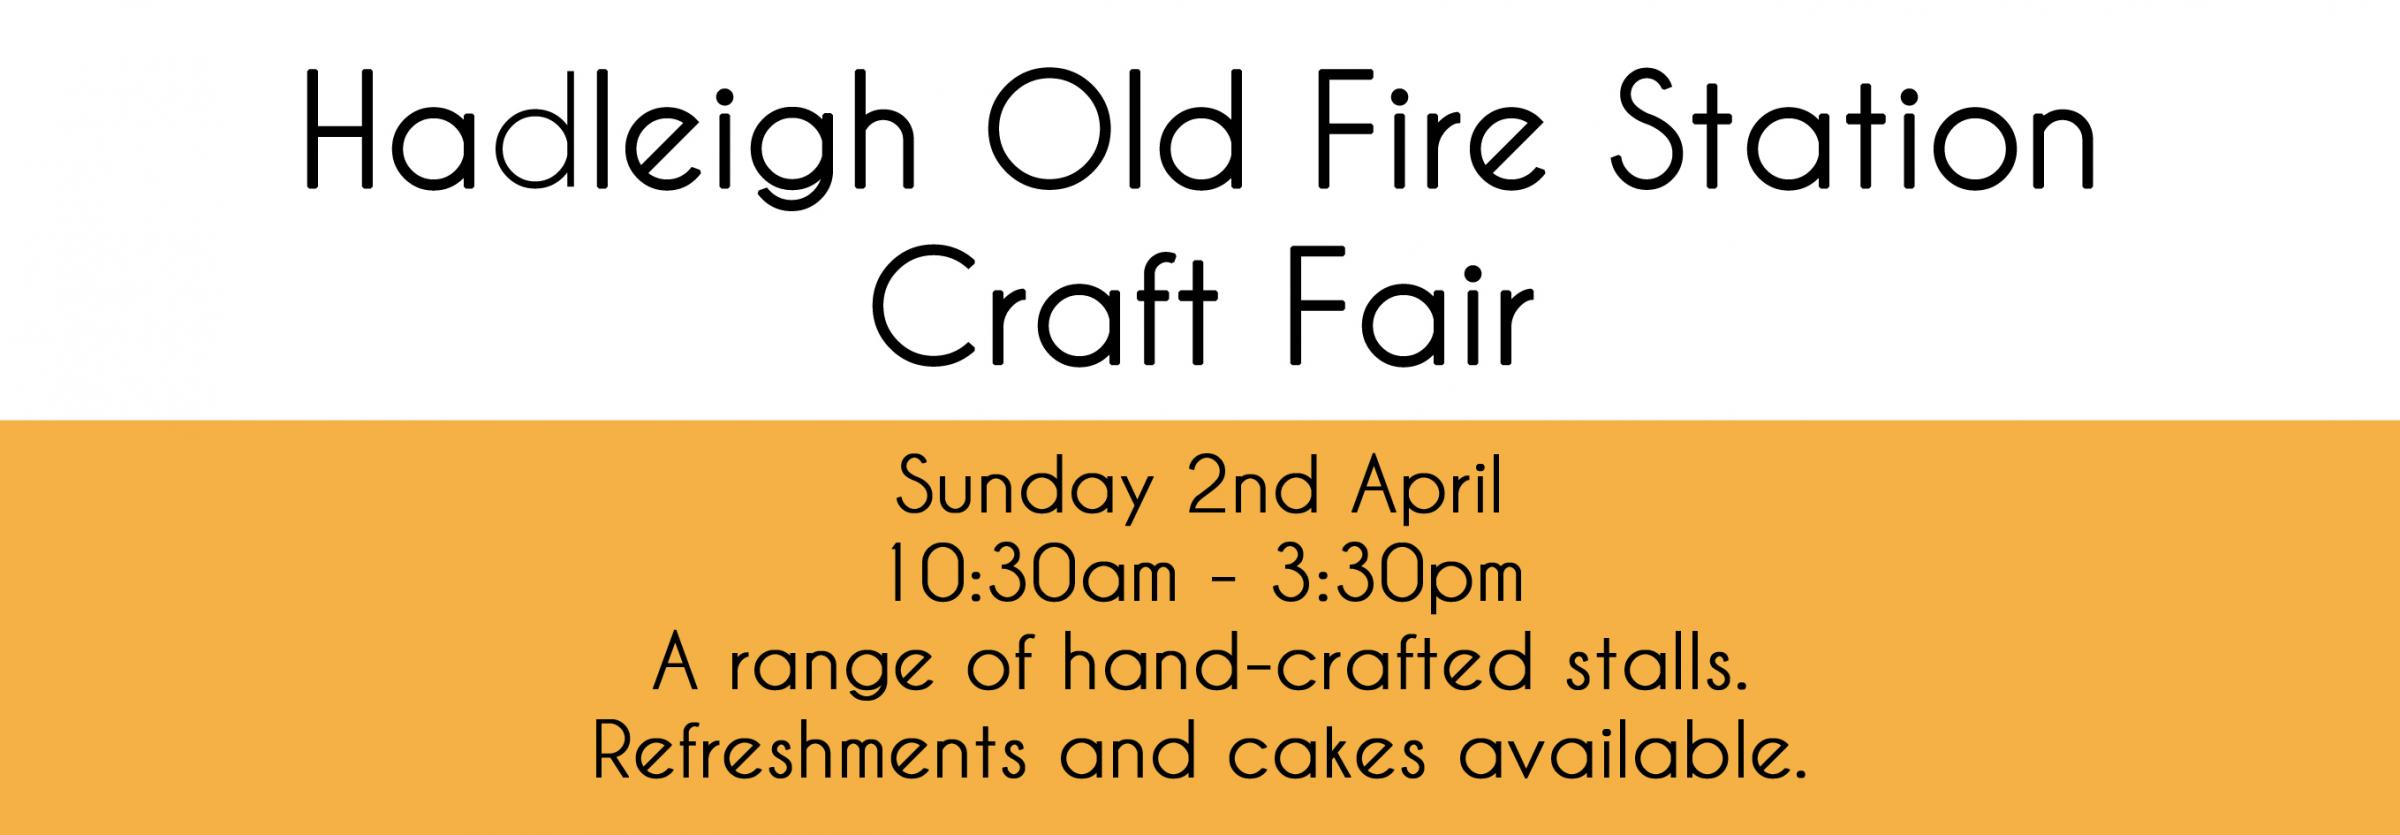 Hadleigh Old Fire Station Craft Fair